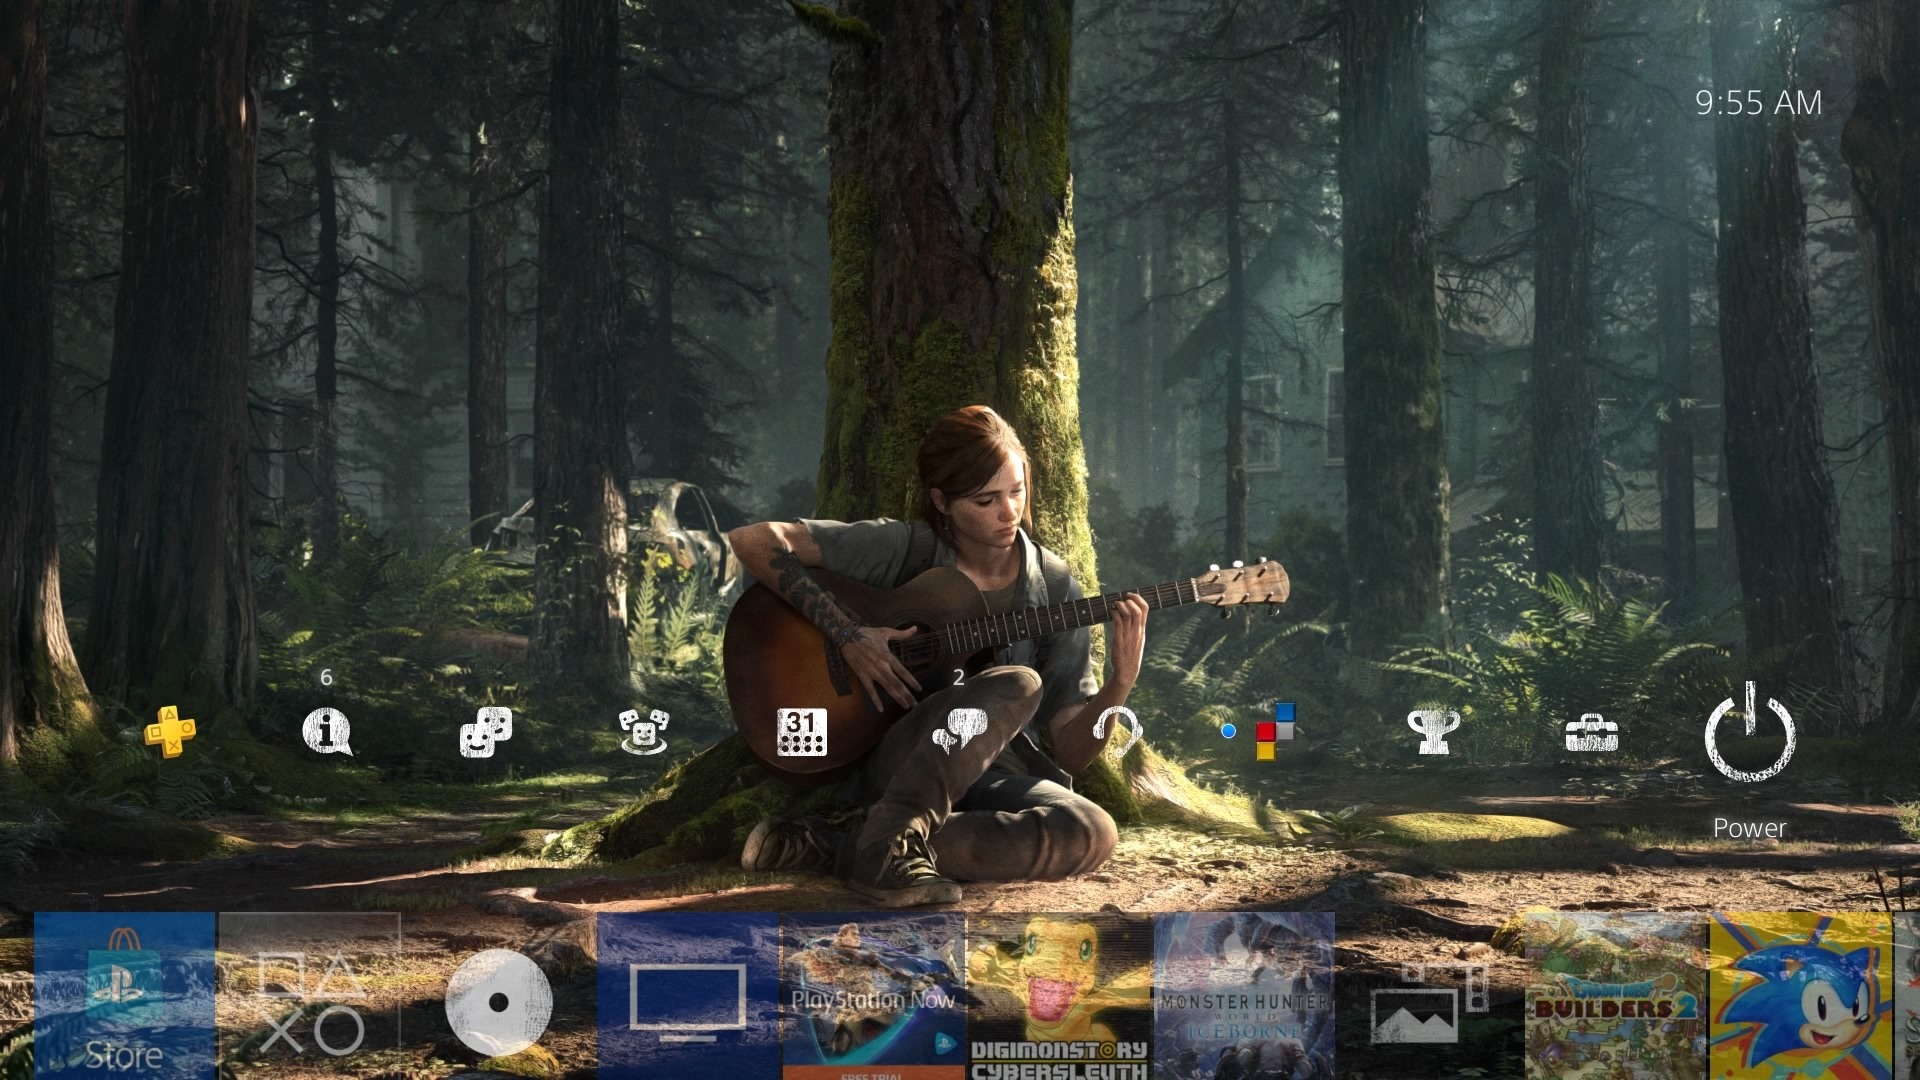 Get This Stunning The Last Of Us 2 Dynamic Ps4 Theme For Free